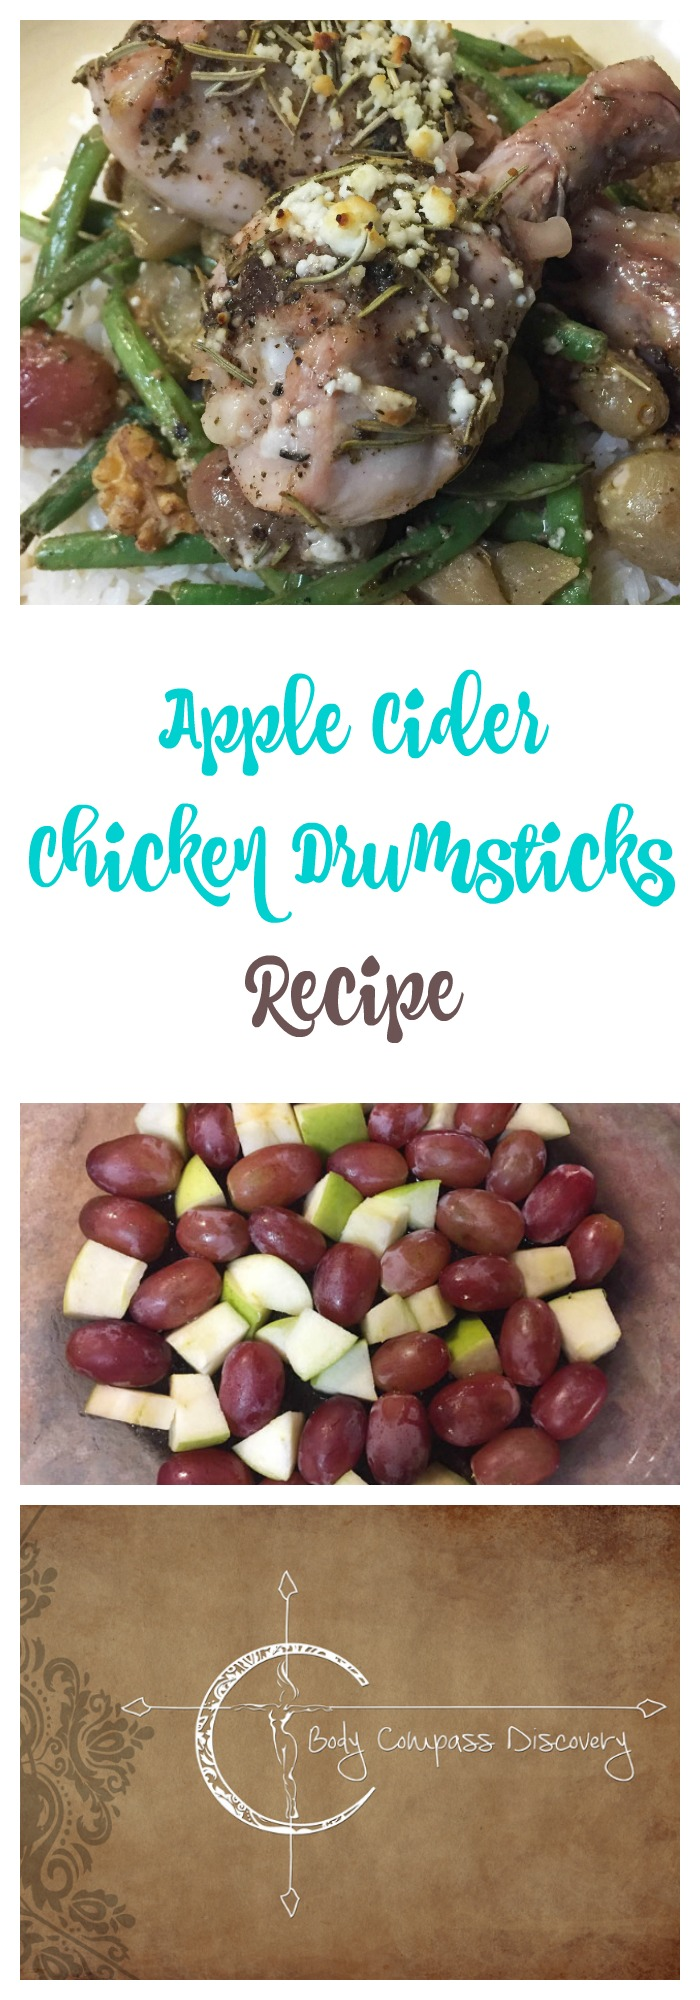 apple cider chicken drumsticks recipe